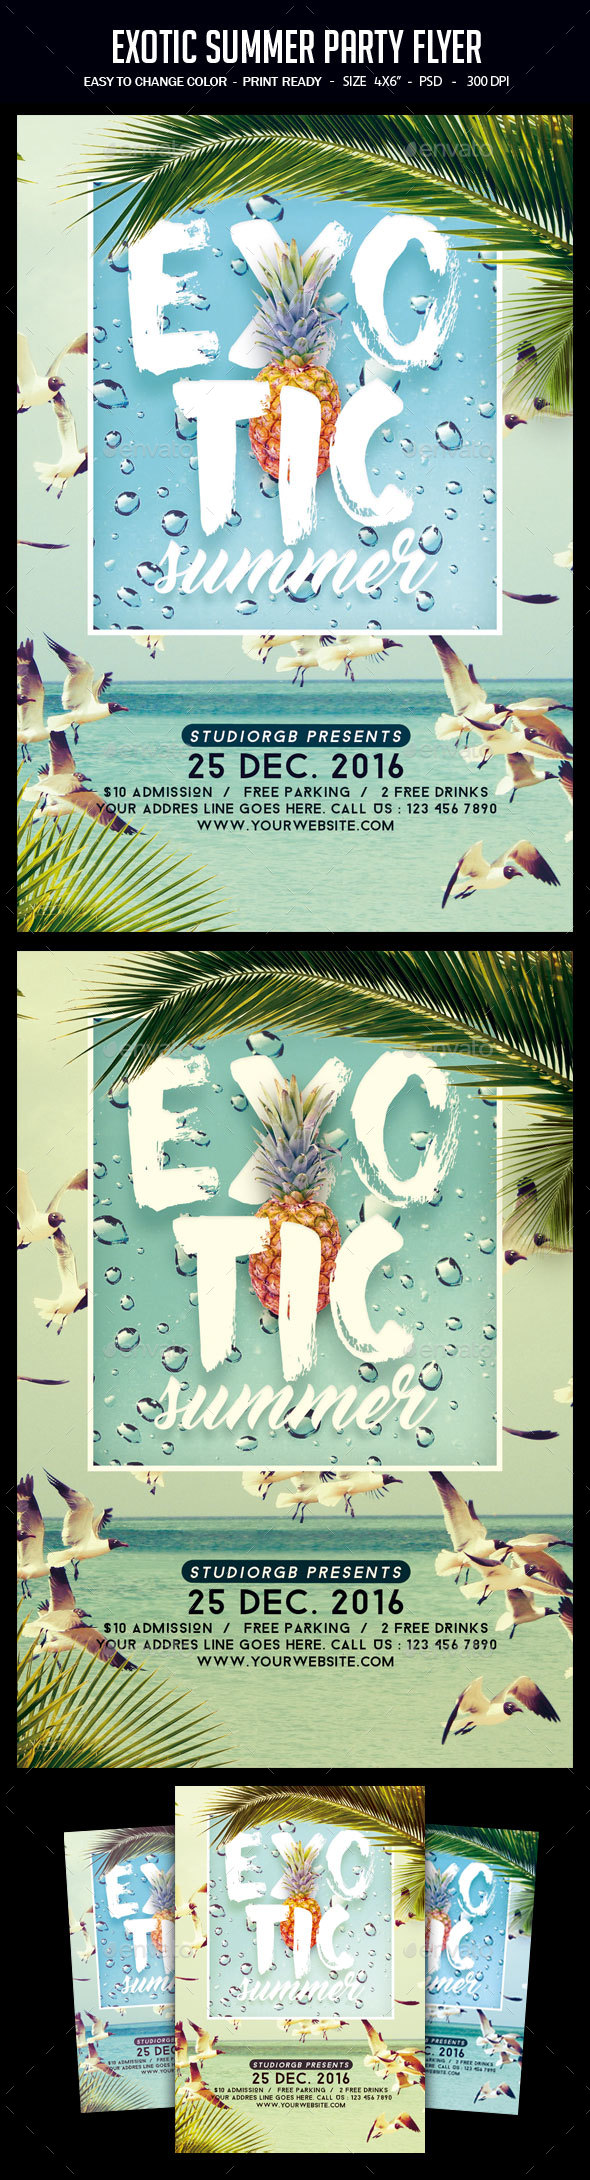 Exotic Summer Party Flyer - Clubs & Parties Events